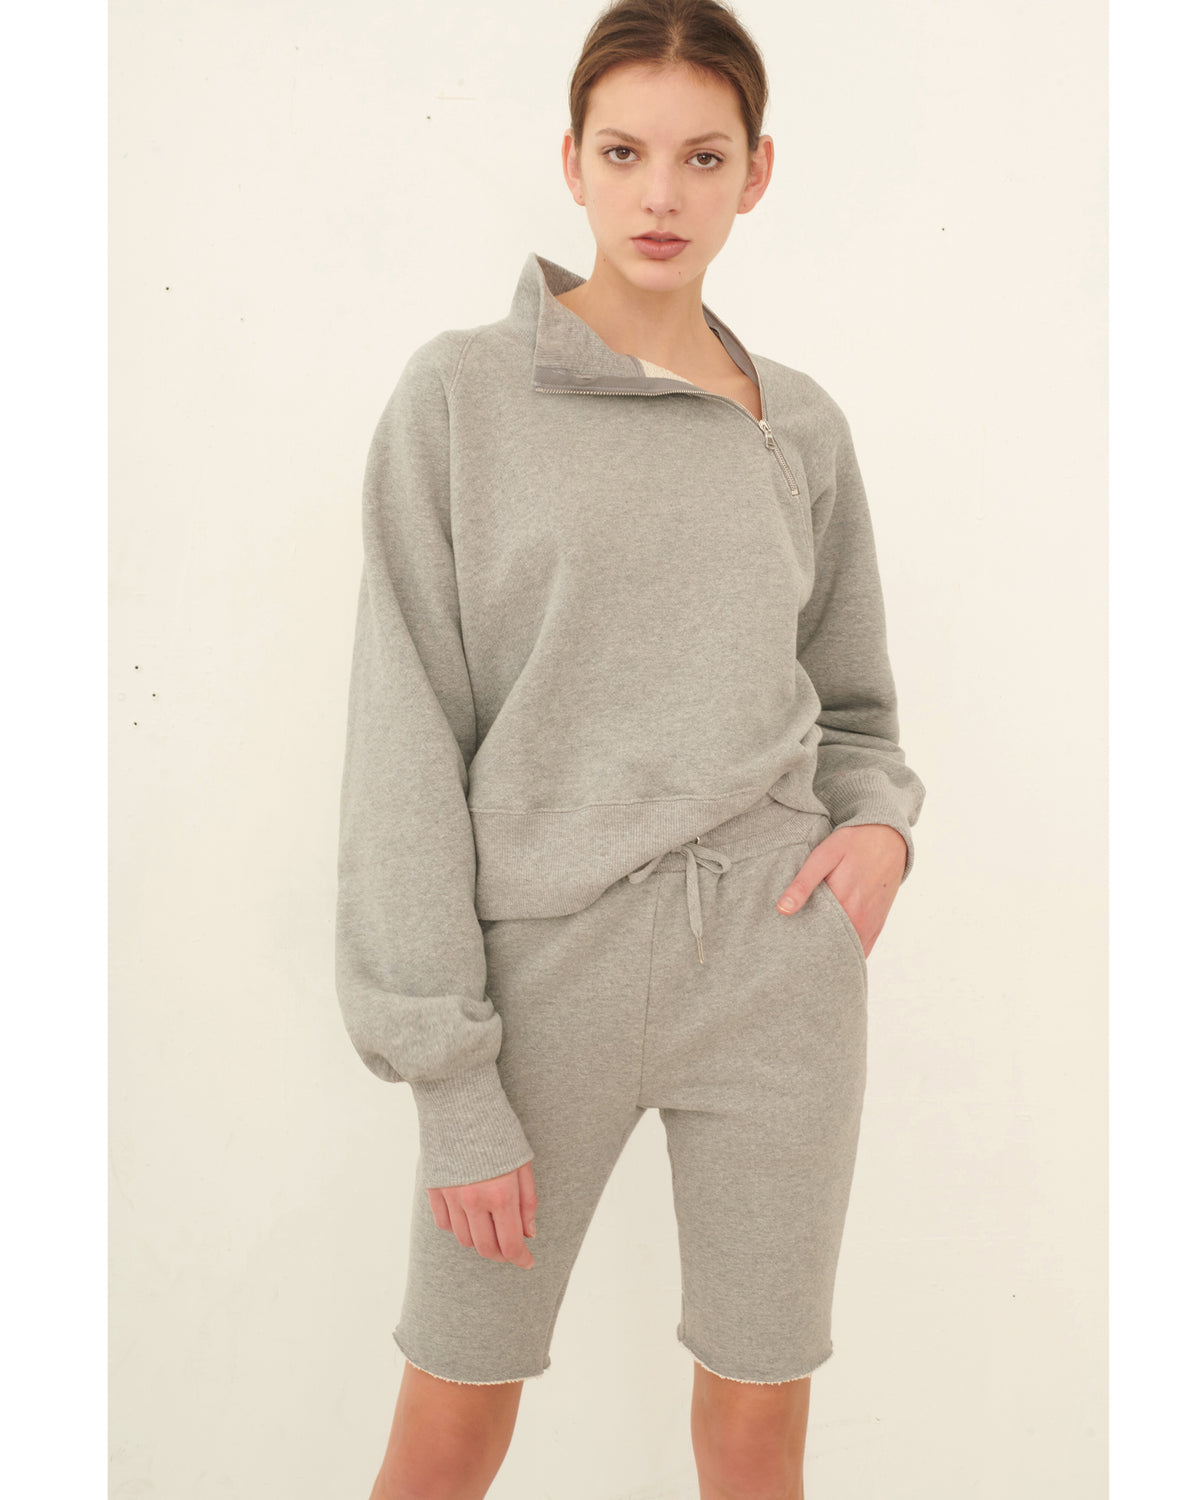 So Uptight Funnel Neck Zip Sweatshirt_Heather Grey_Lookbook